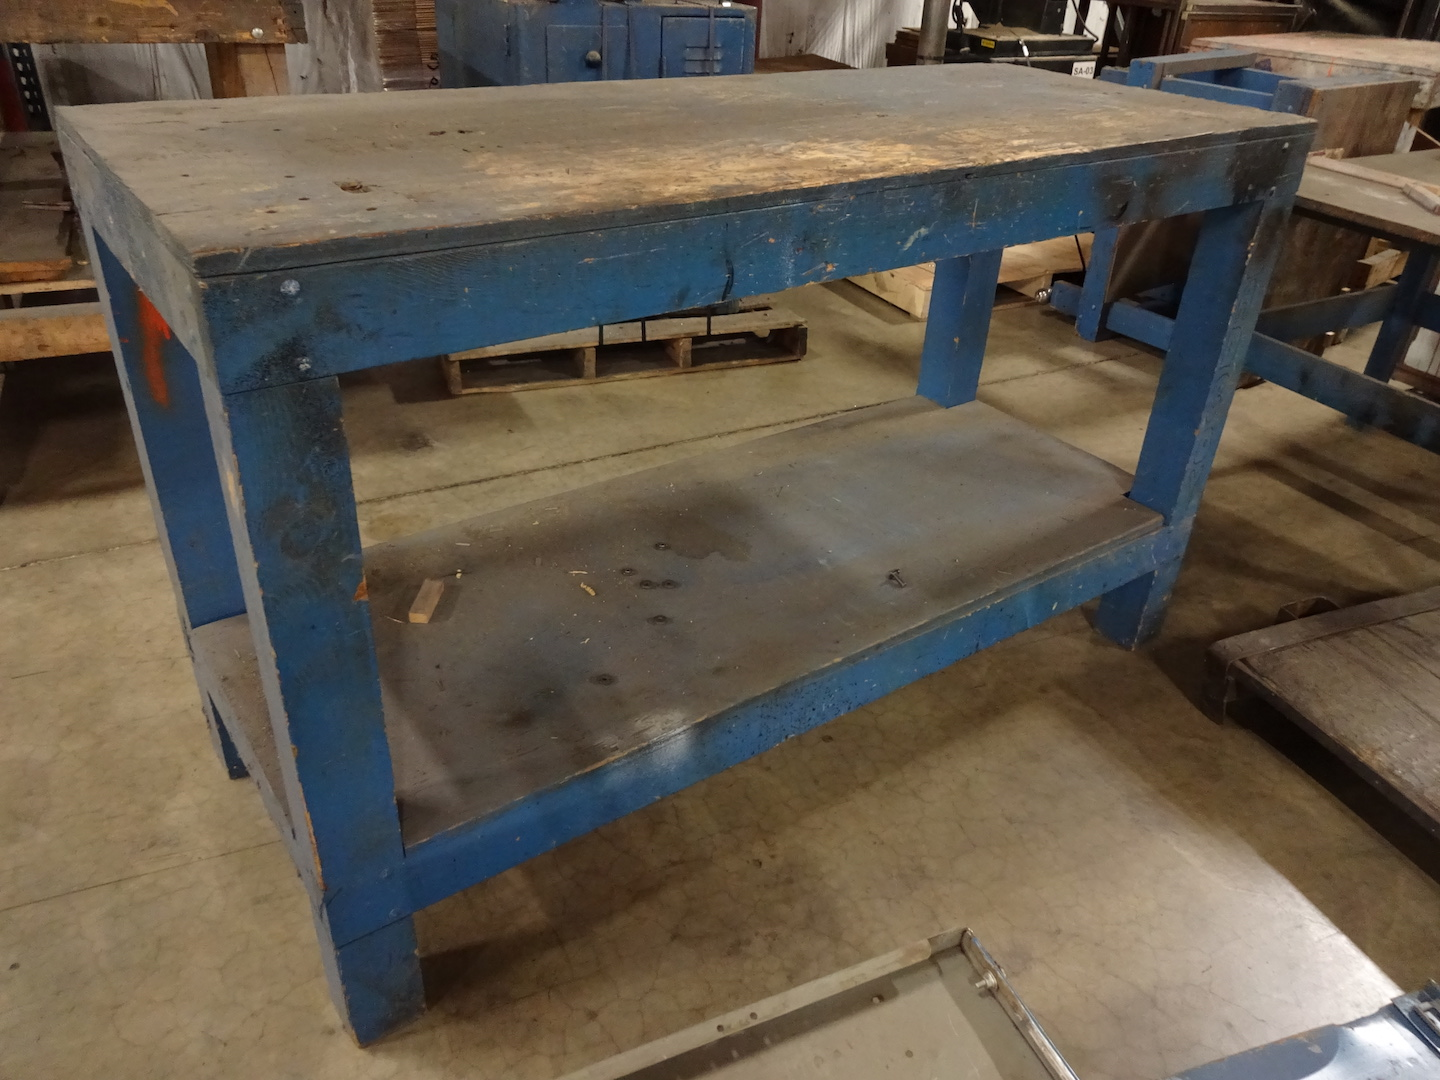 LOT: Assorted Wood Tables - Image 2 of 3